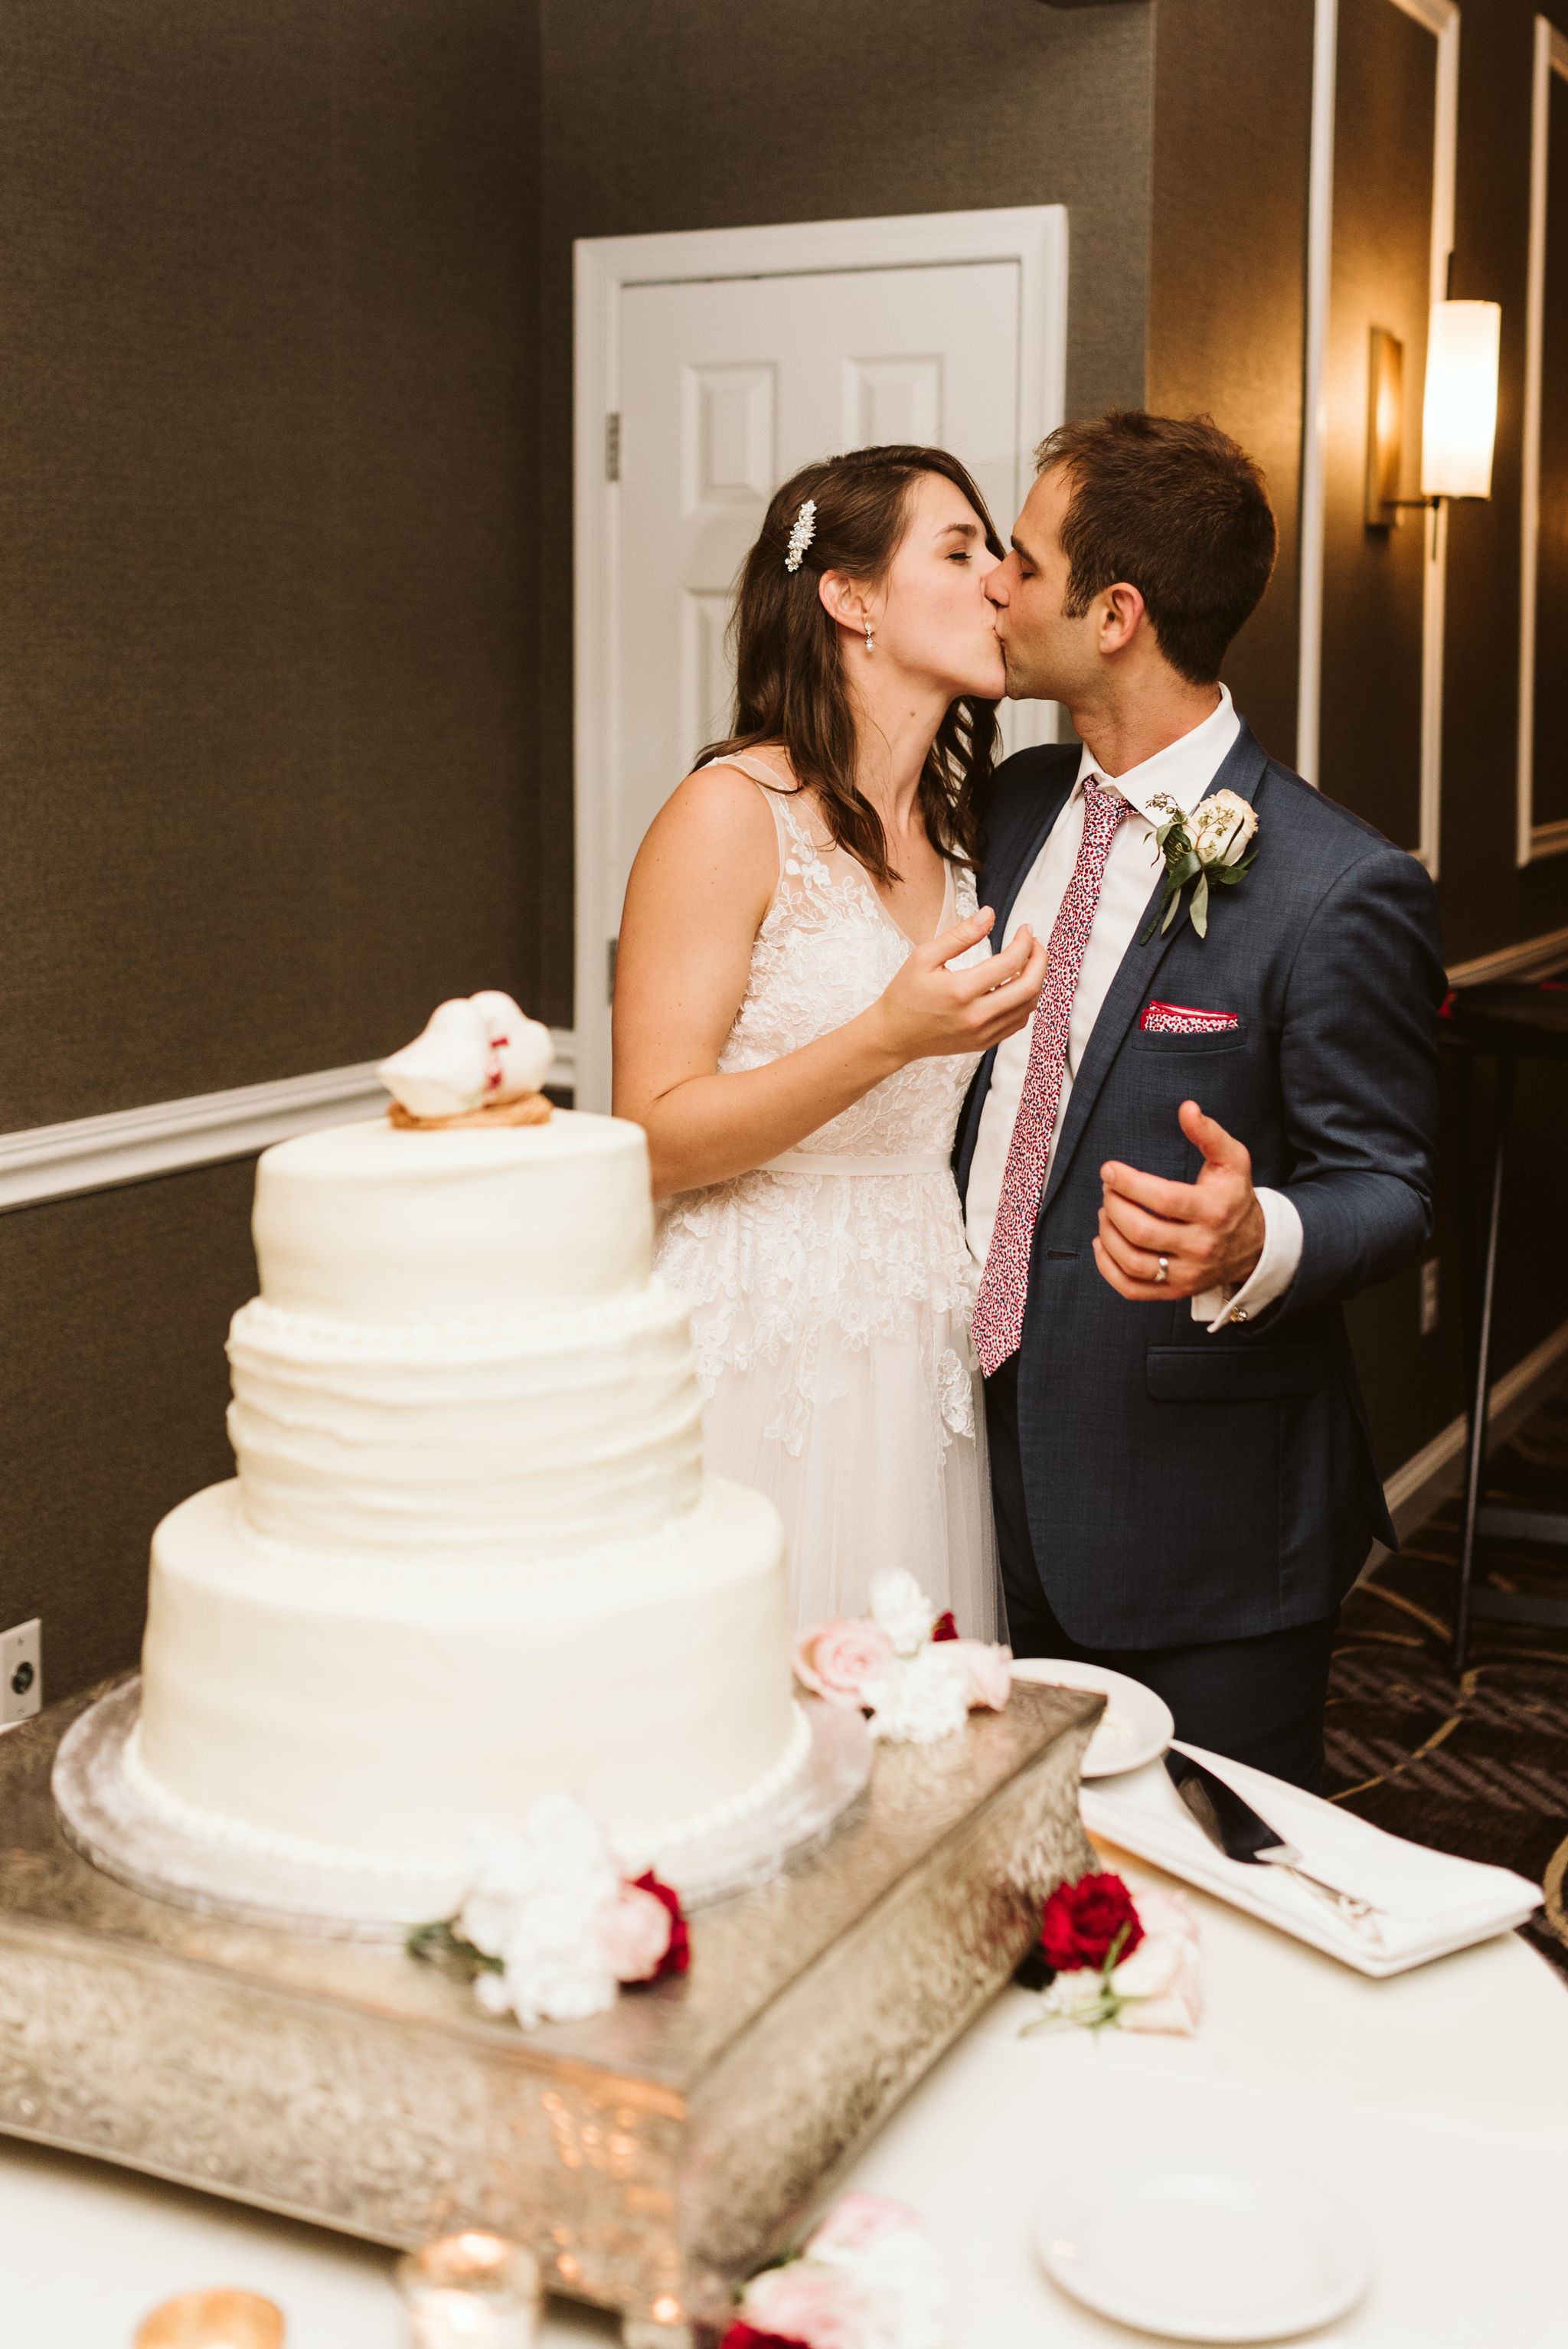 Phoenix Maryland, Baltimore Wedding Photographer, Eagle's Nest Country Club, Classic, Romantic, Bride and Groom Kissing After Cutting the Cake, Graul's Market Cake,